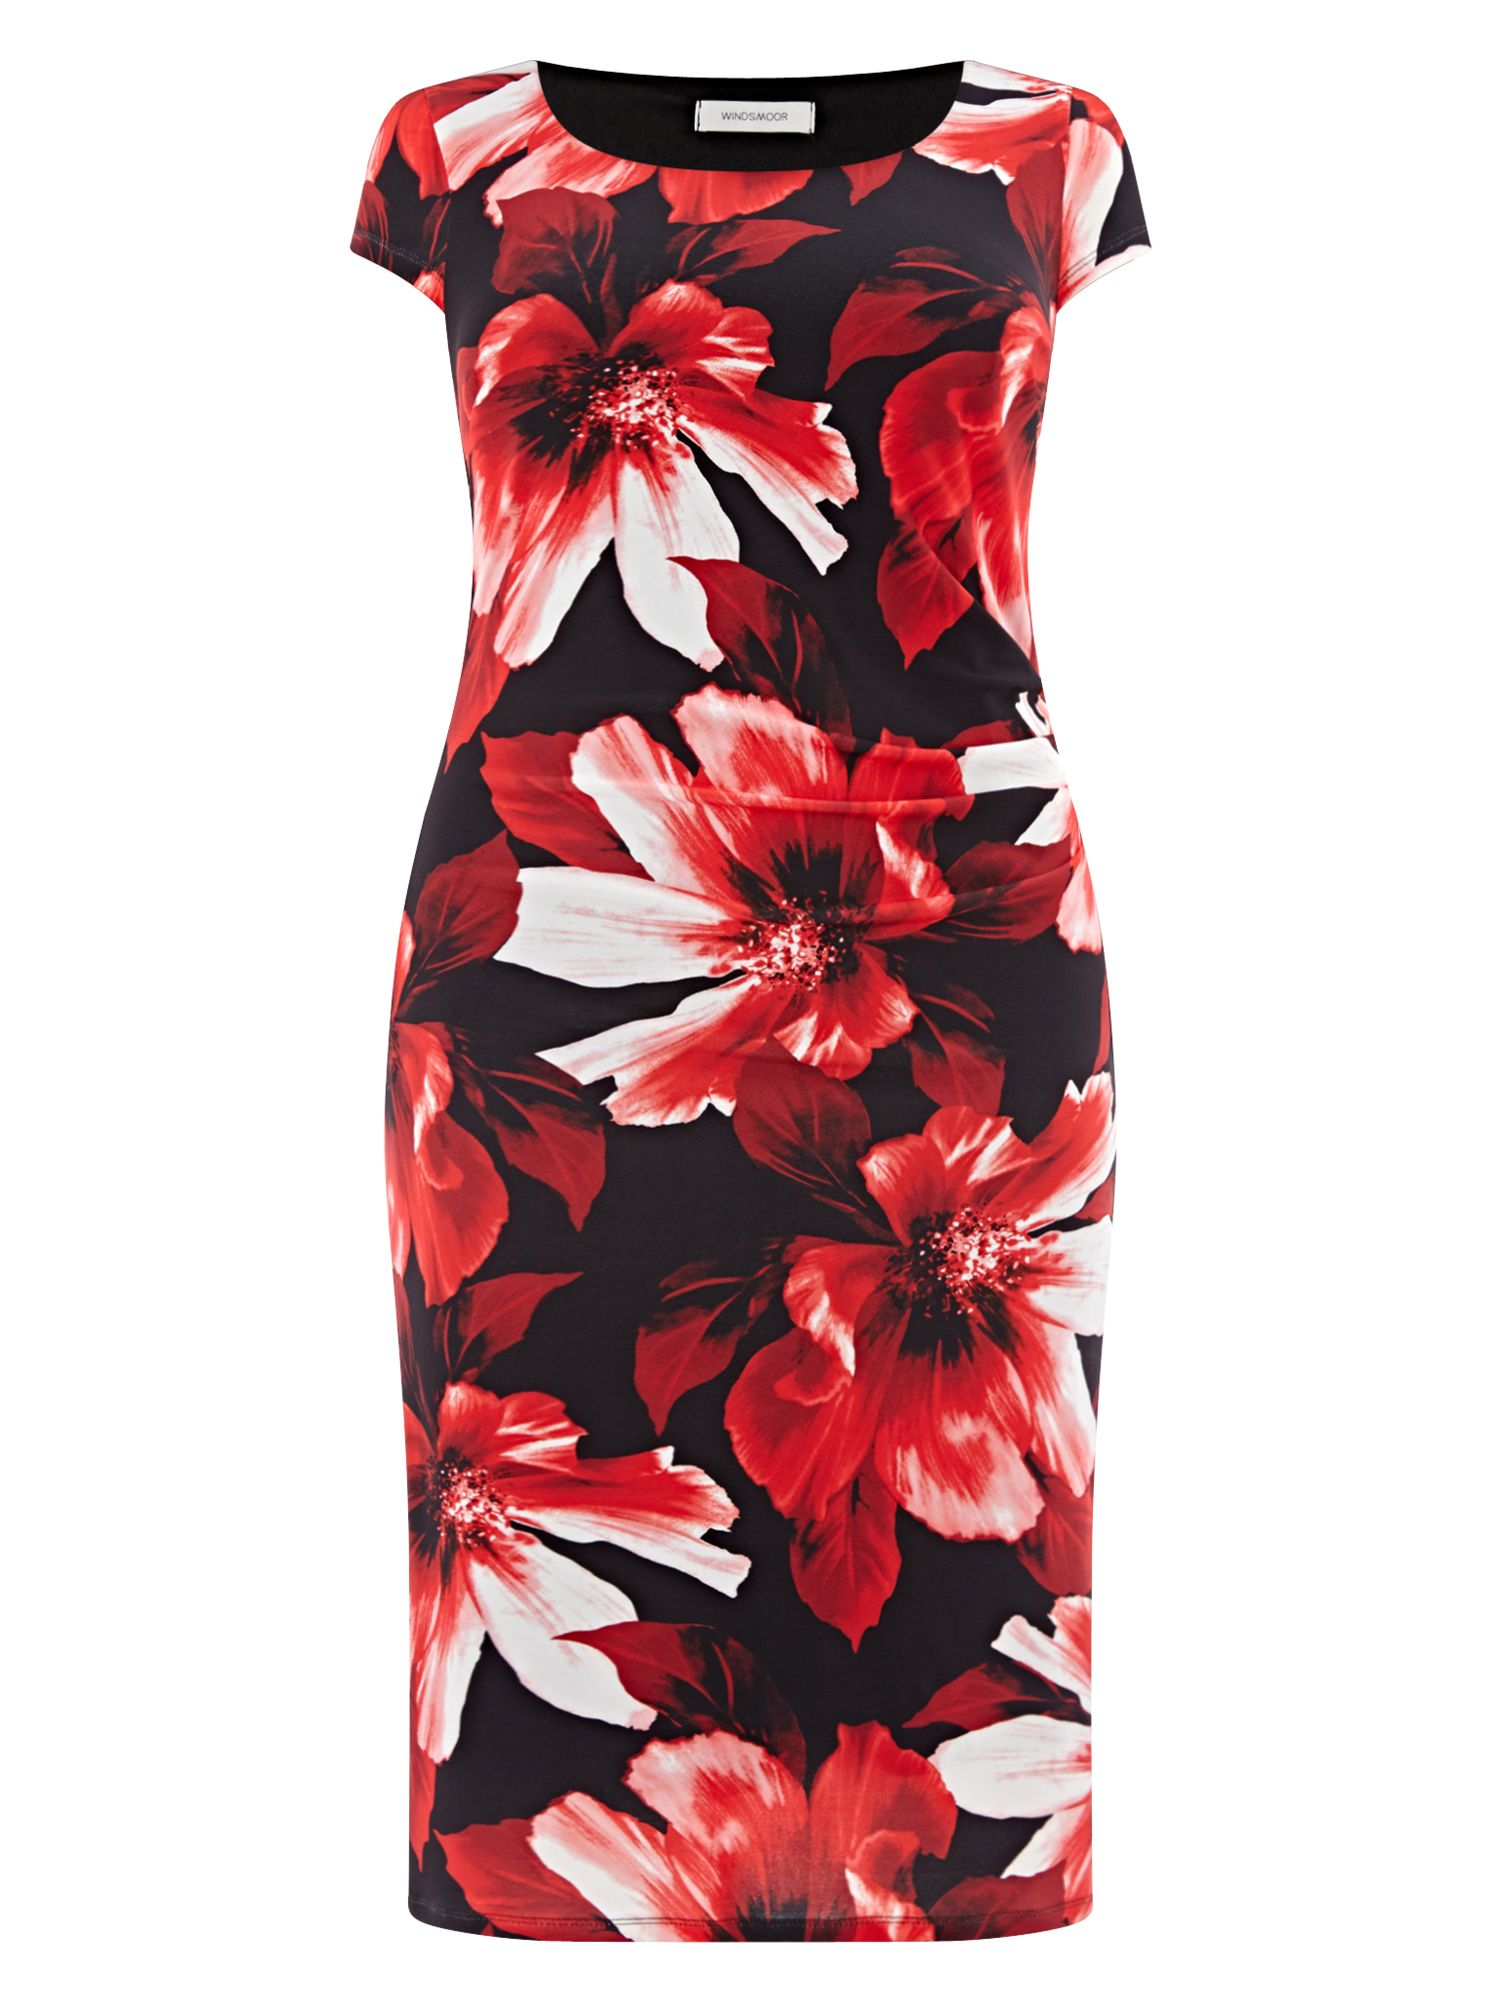 Add some femininity to your wardrobe this season with this lovely printed shift dress. Boasting a statement floral design in vibrant red, this dress also features gathers on the side and cap sleeves for a flattering finish. http://tidd.ly/edfcc801